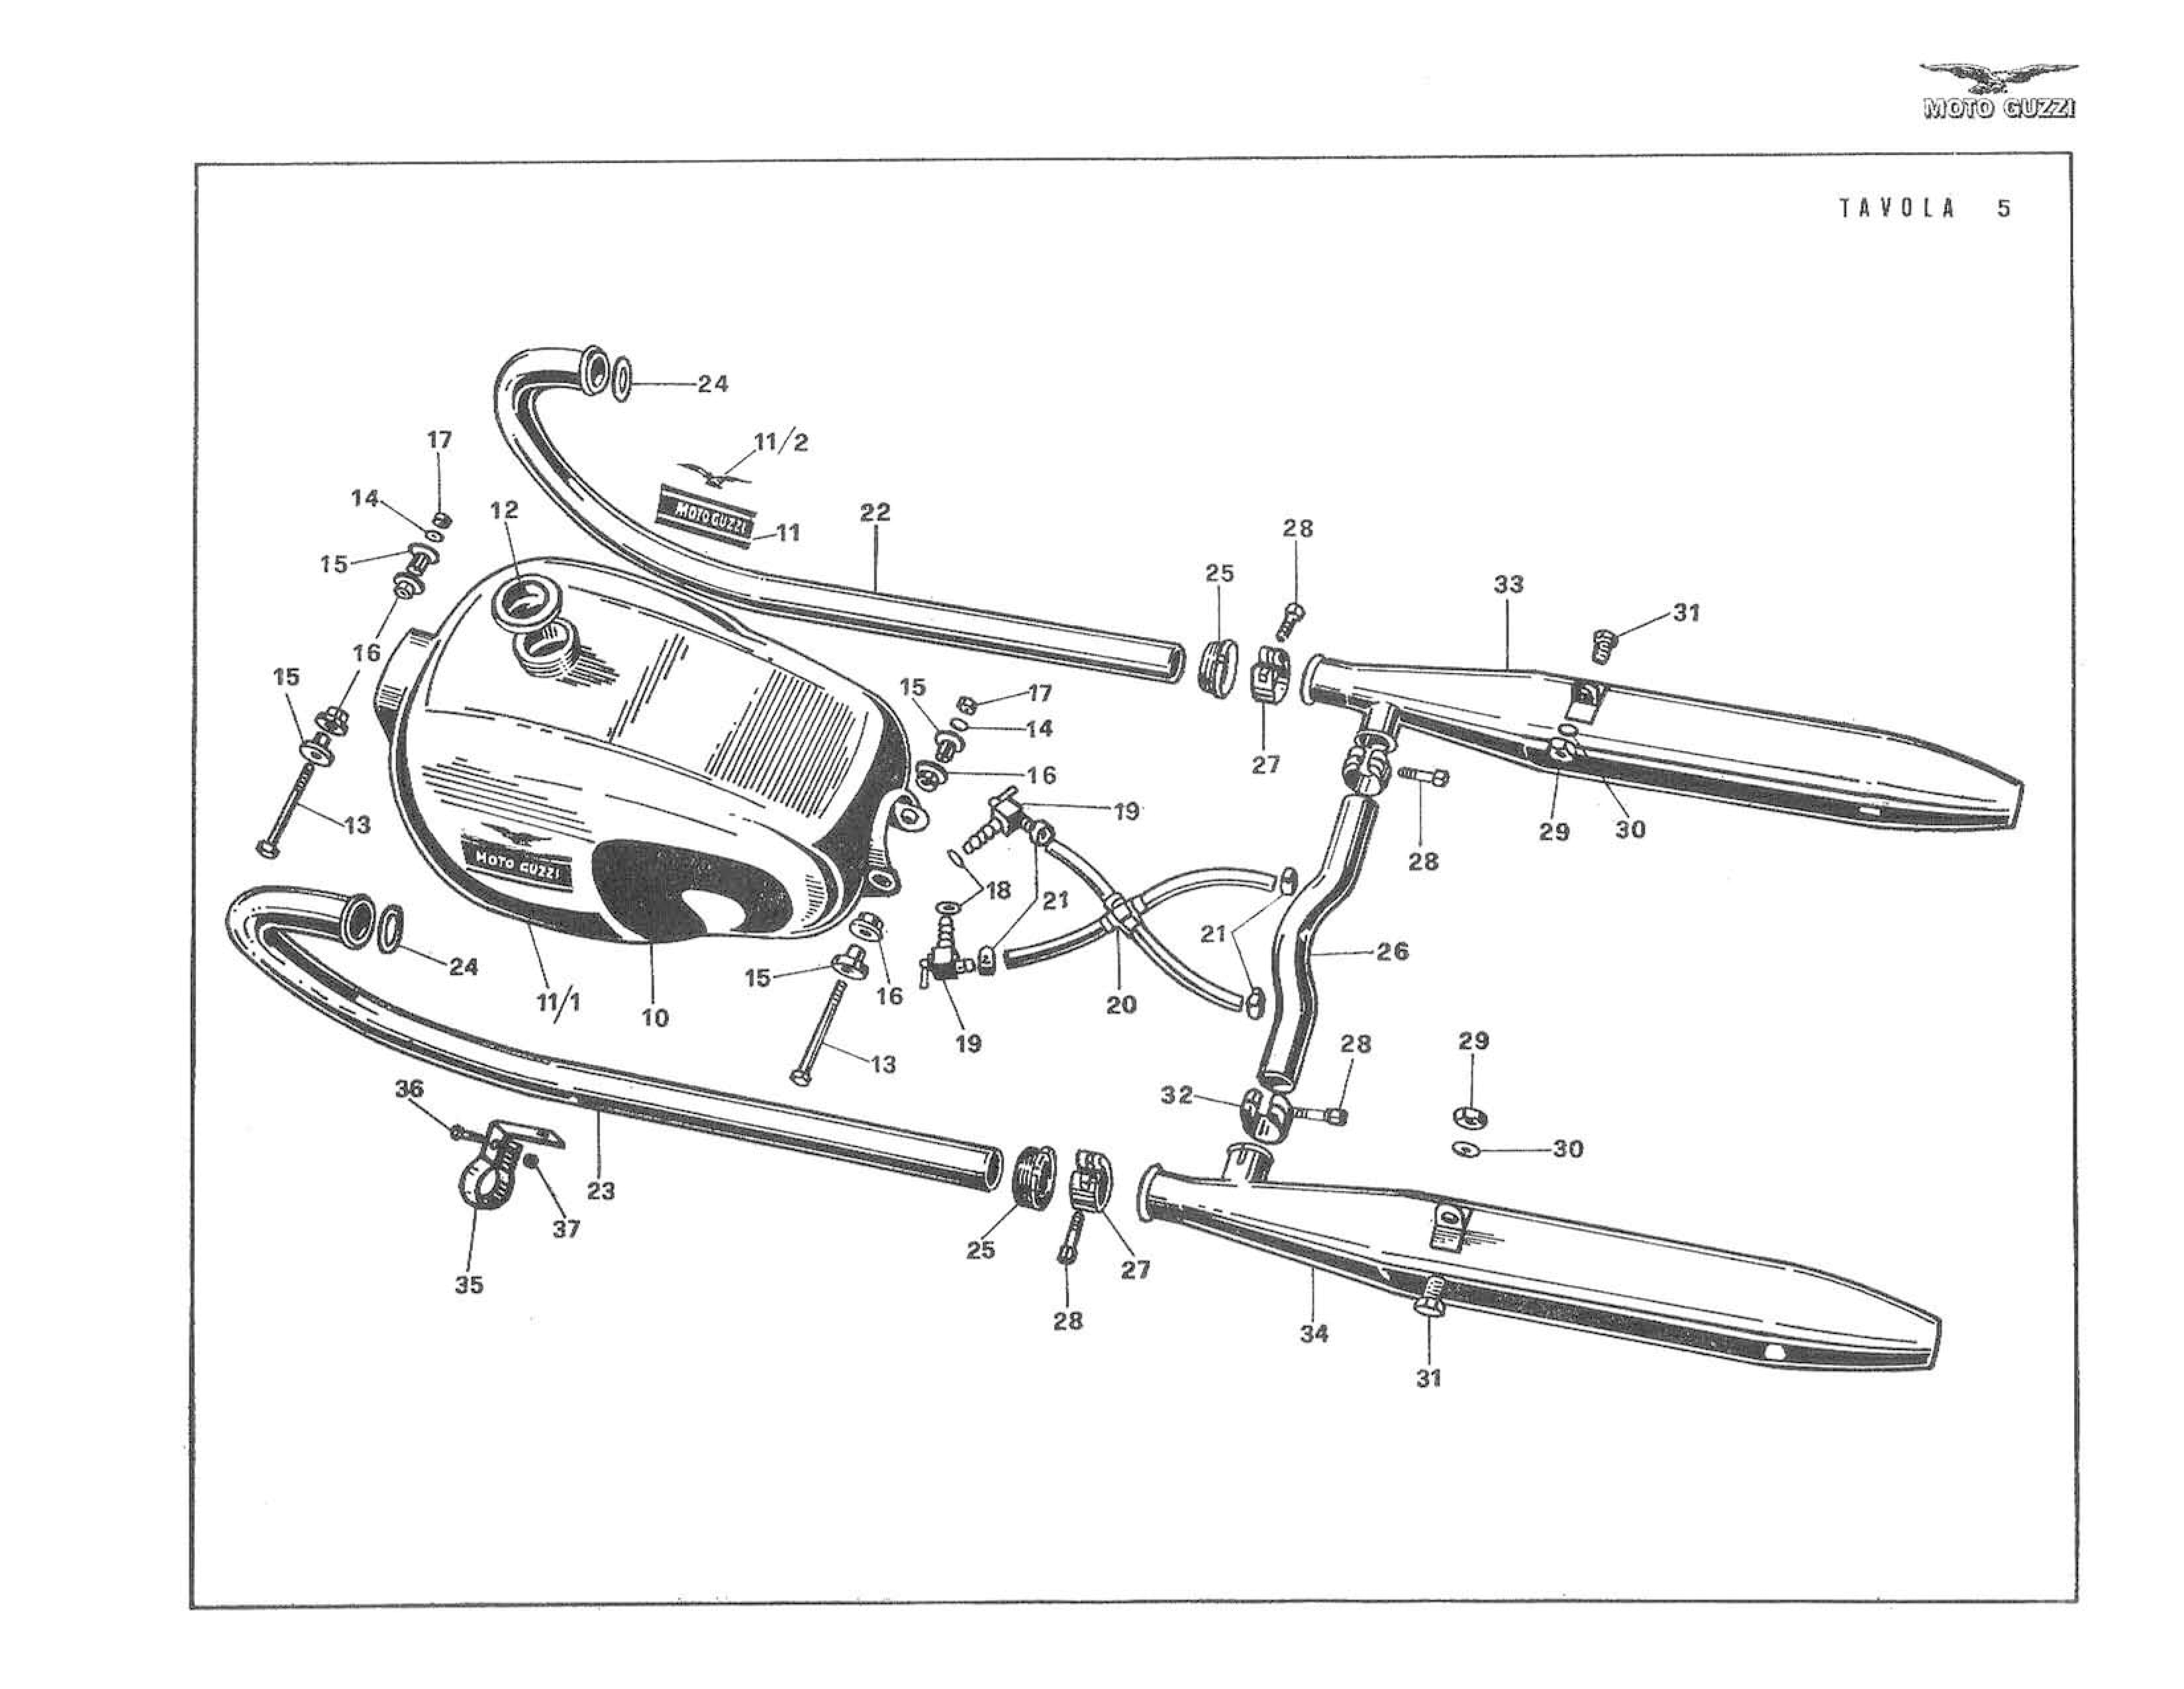 2001 toyota tundra parts diagram ford wiring 7 pin trailer plug oem ta a and fuse box